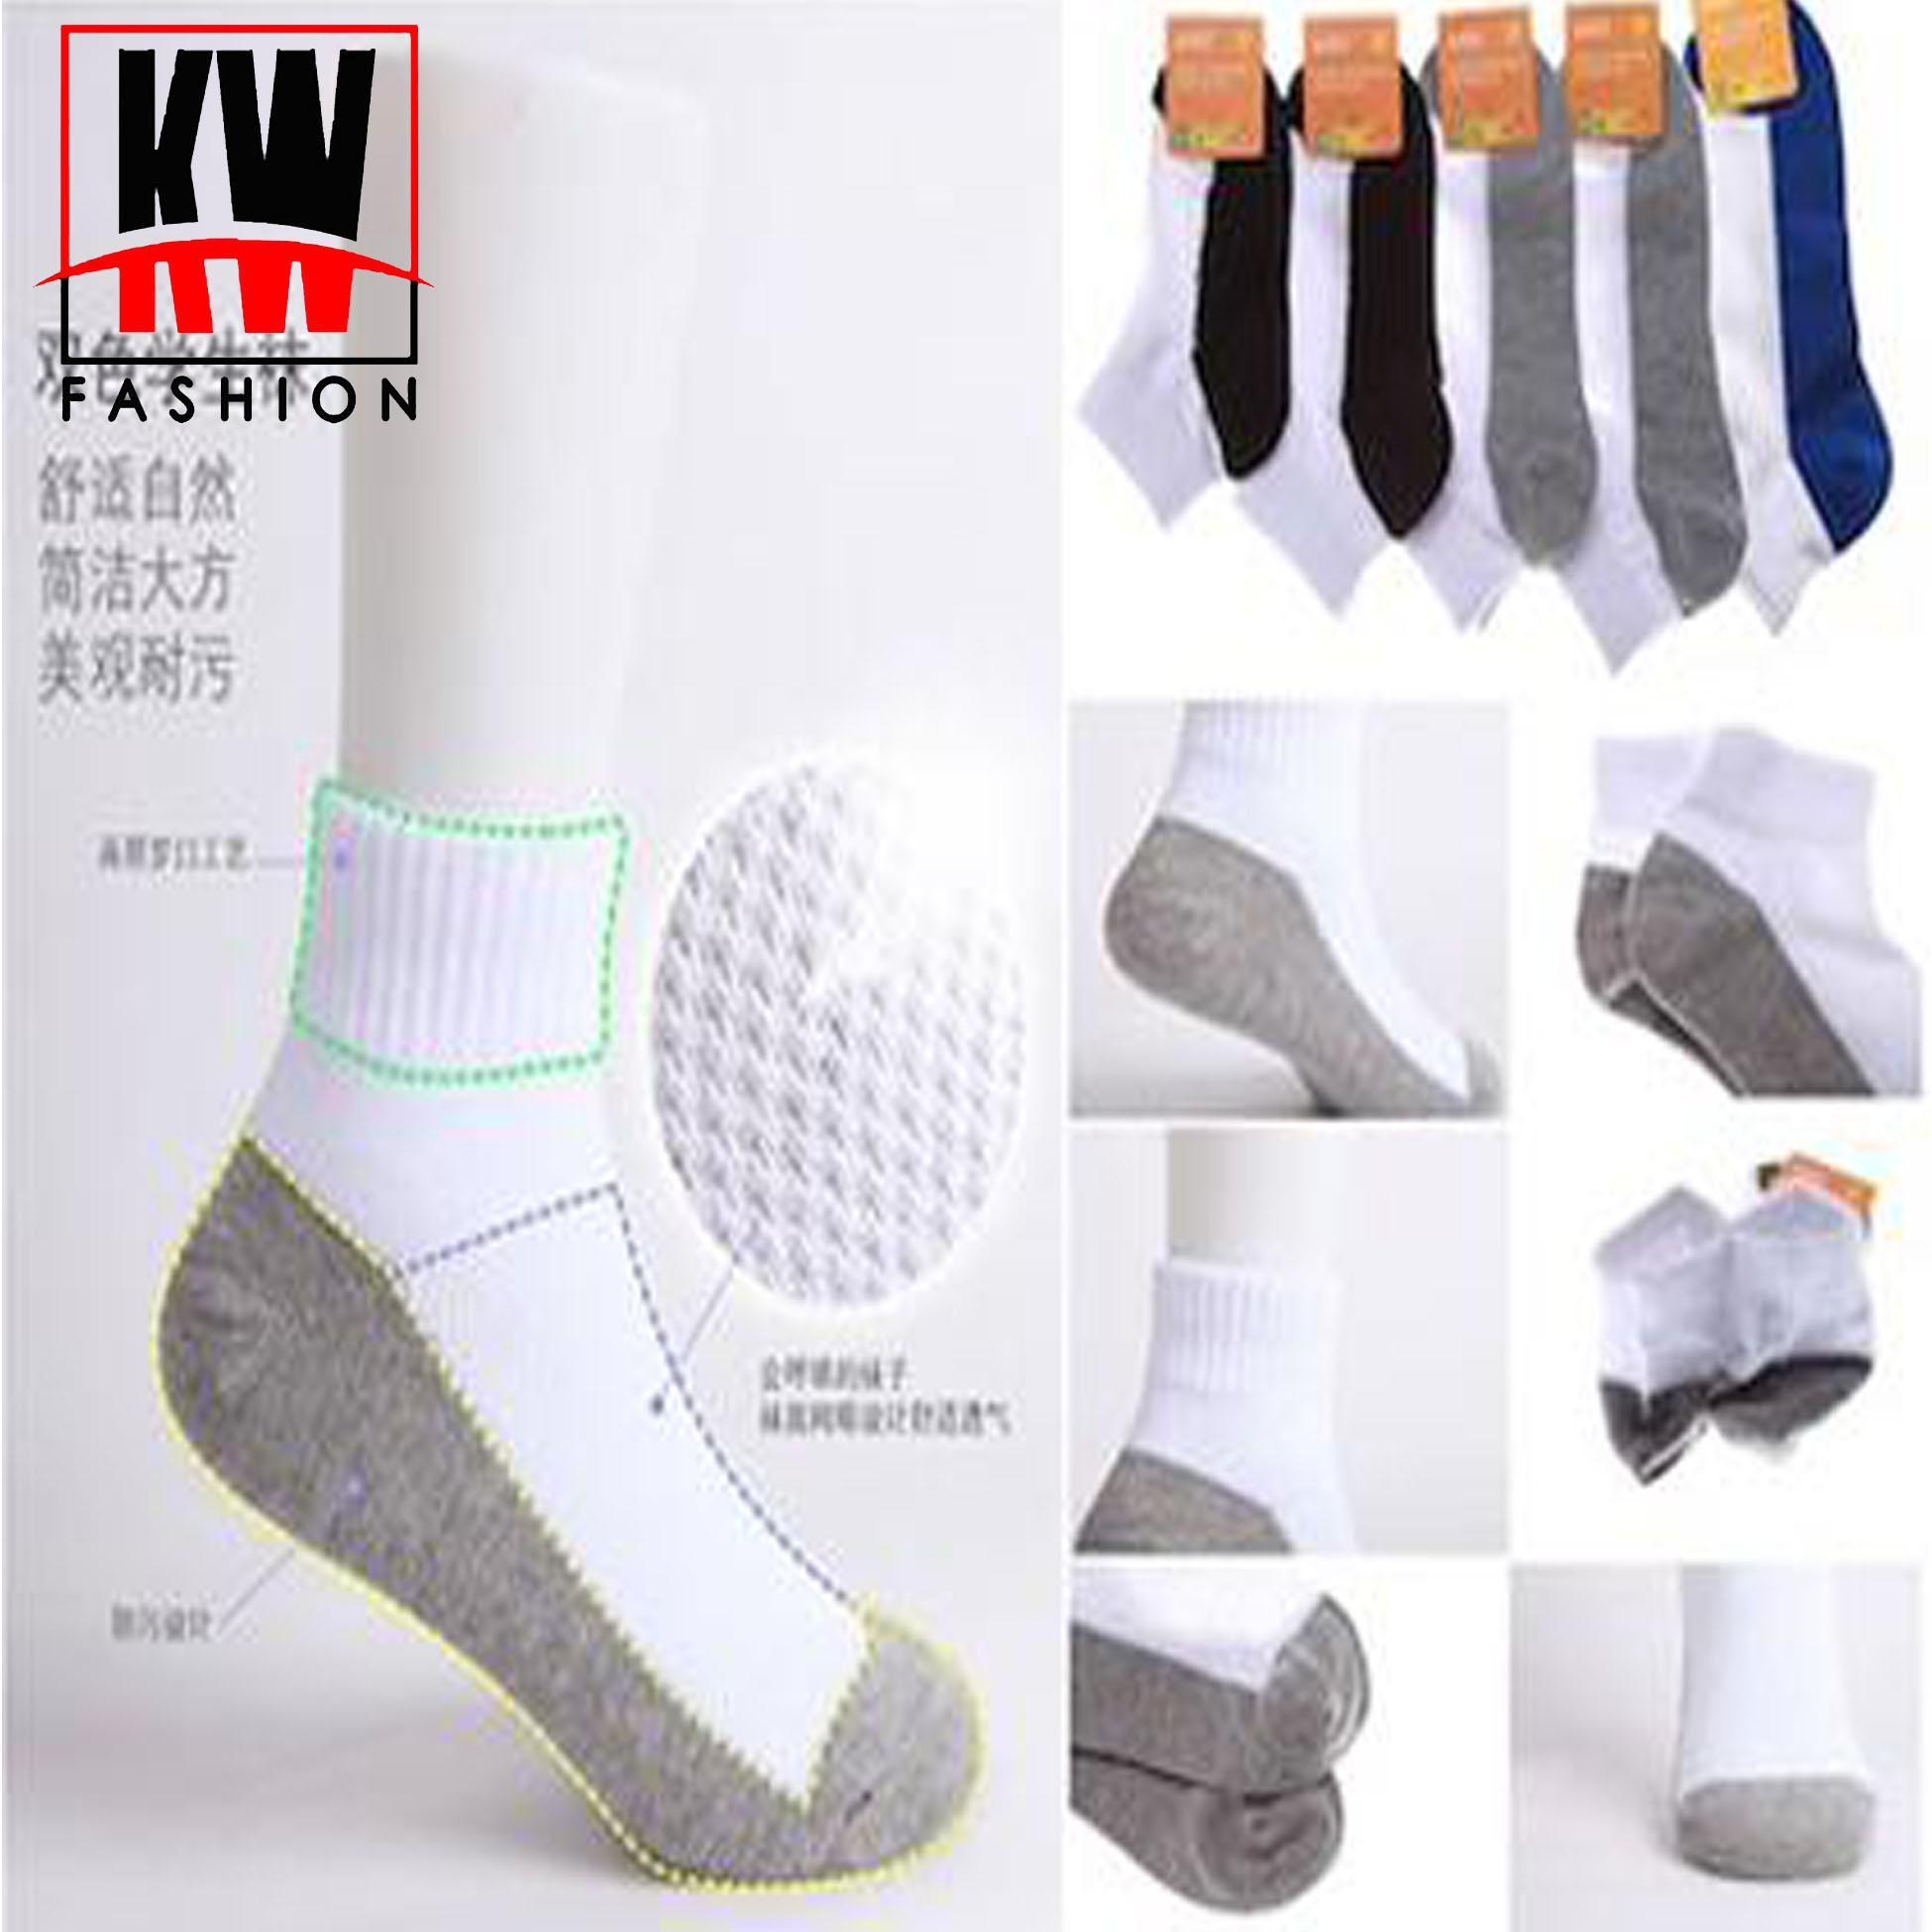 4c8668a19 Girls Socks for sale - Tights for Girls Online Deals   Prices in ...